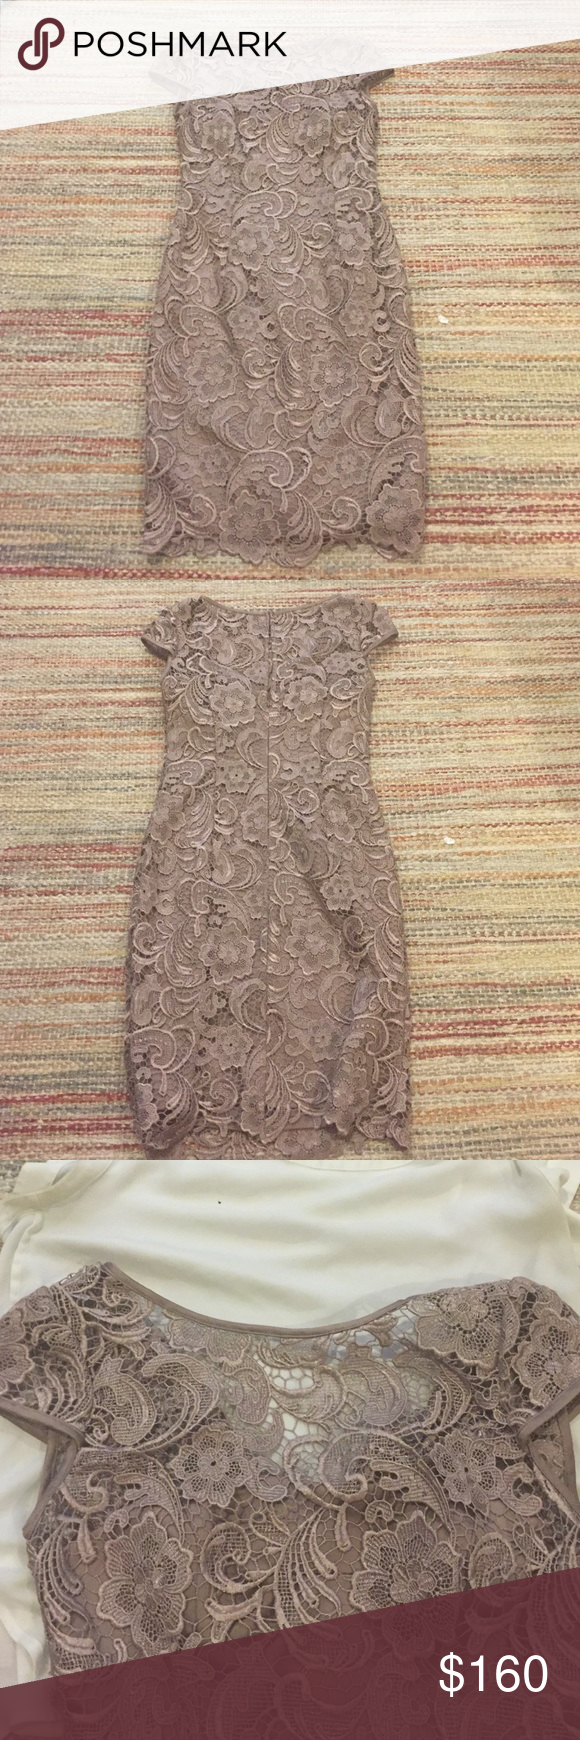 Adrianna Papell Lace Cocktail Dress Beautiful Adrianna Papell Lace Cap-Sleeve Illusion Sheath Dress. Only worn once, excellent condition! Keyhole in back. Gorgeous nude/taupe color with light sheen. Adrianna Papell Dresses